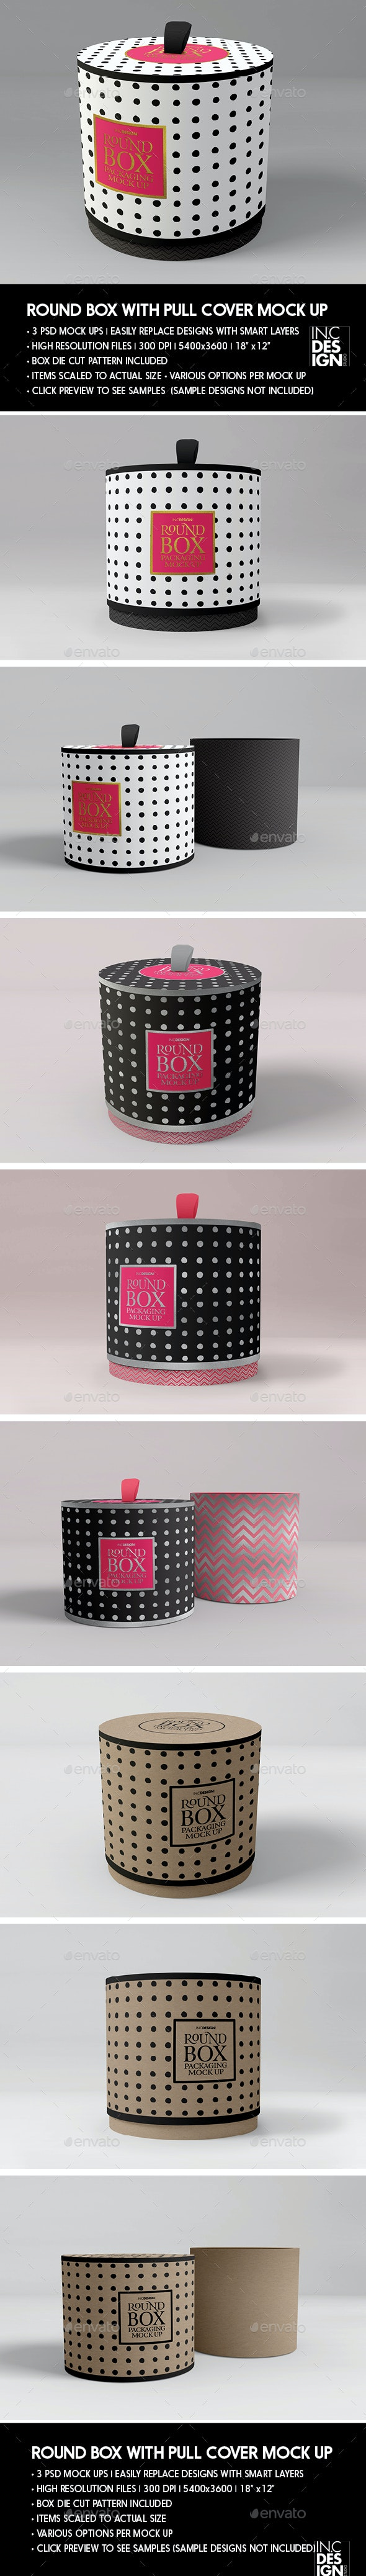 Packaging Mock Up Round Box with Pull up Cover - Product Mock-Ups Graphics